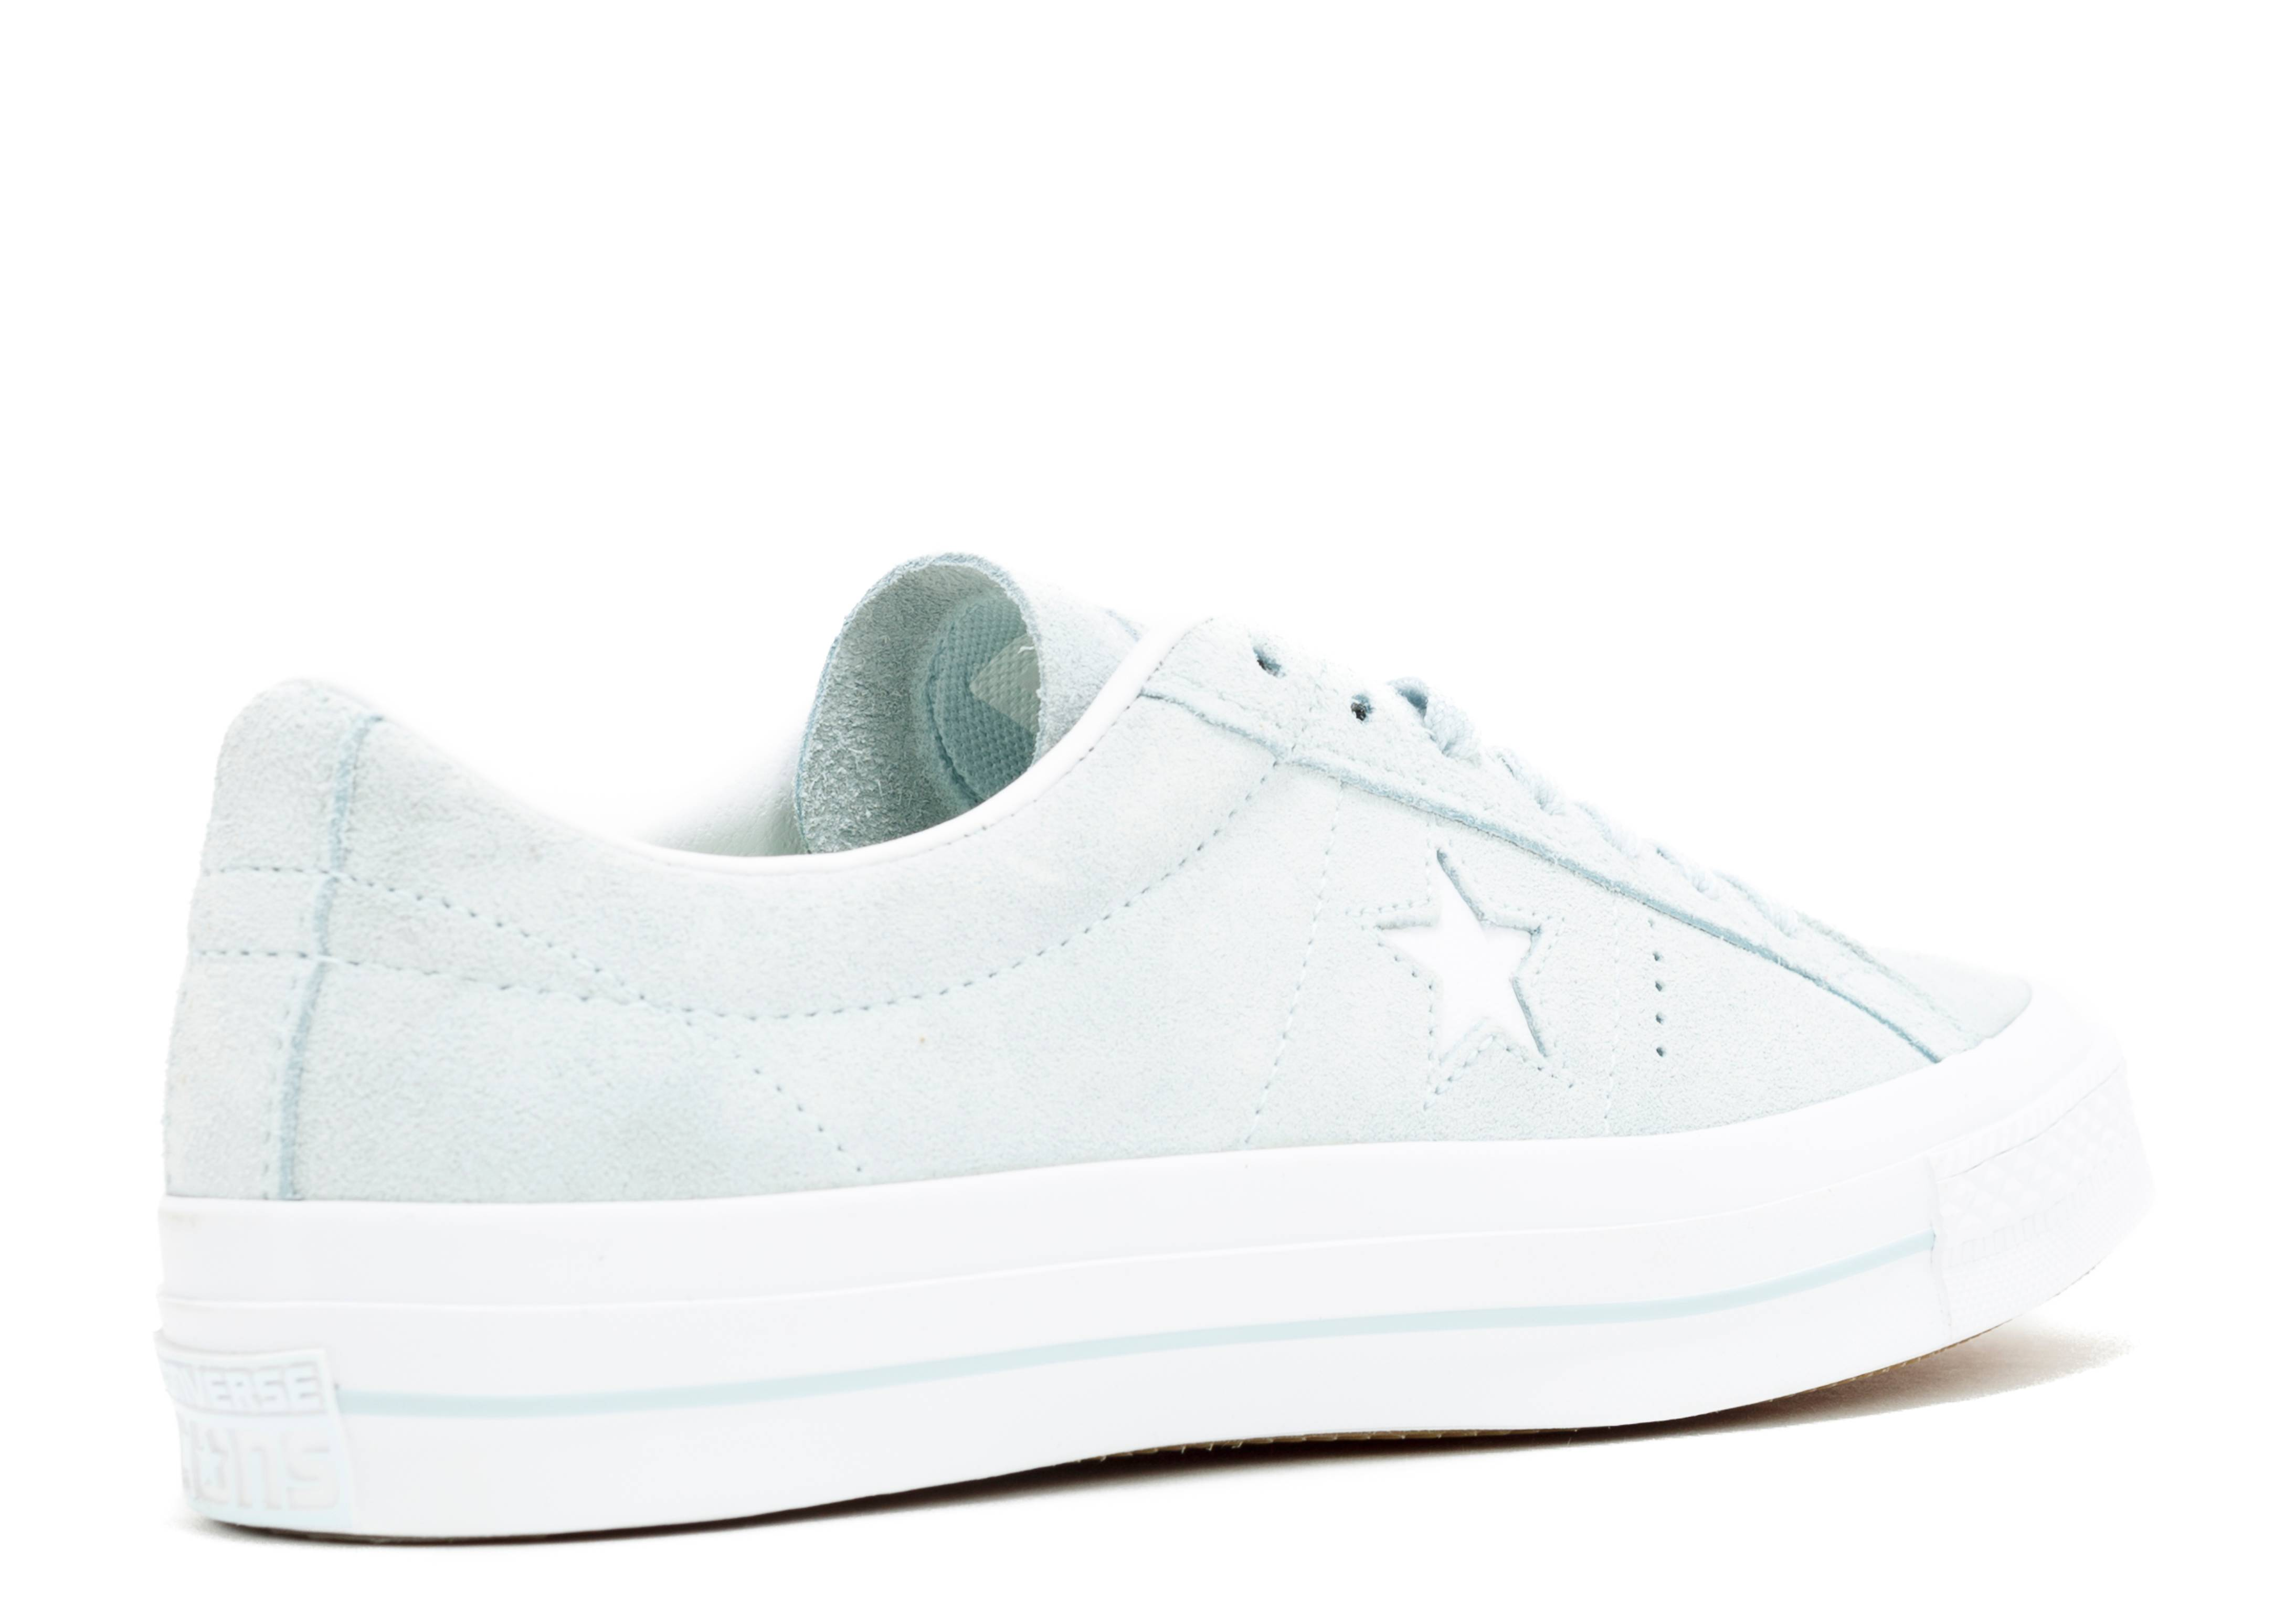 78e727c9108e One Star Suede Ox - Converse - 153963c - polar blue white white ...